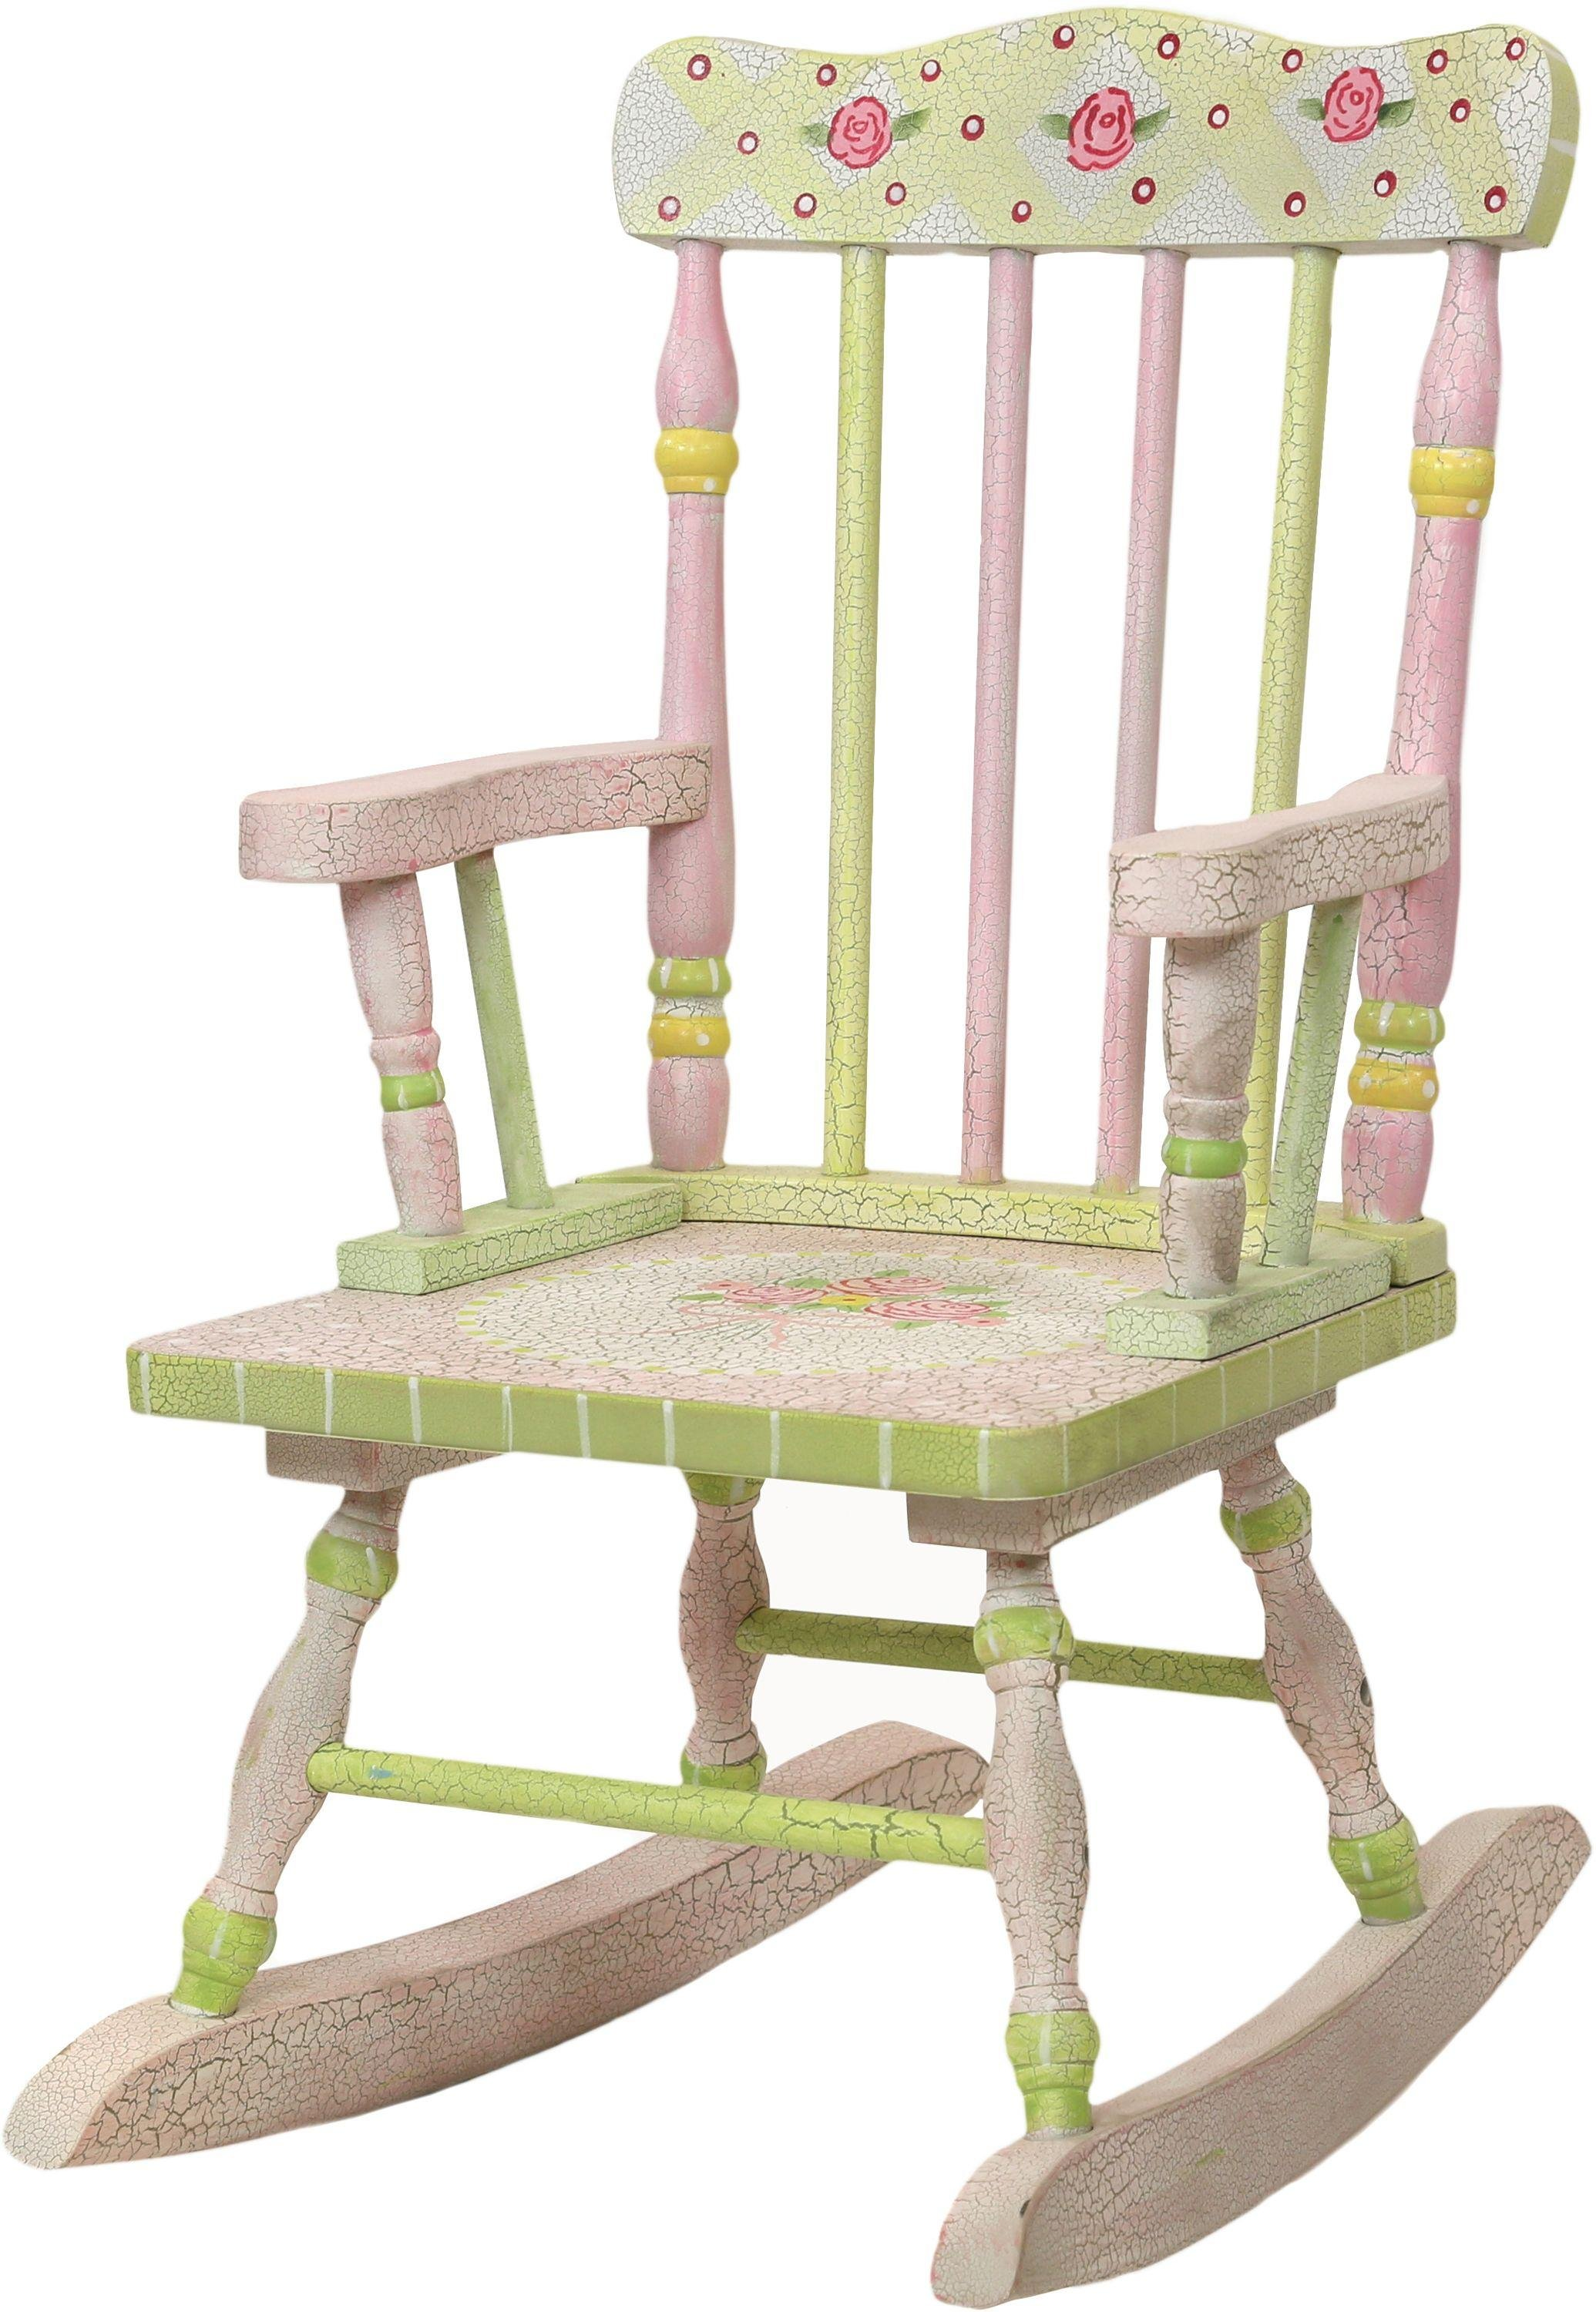 Image of Fantasy Fields Crackled Rose Rocking Chair.